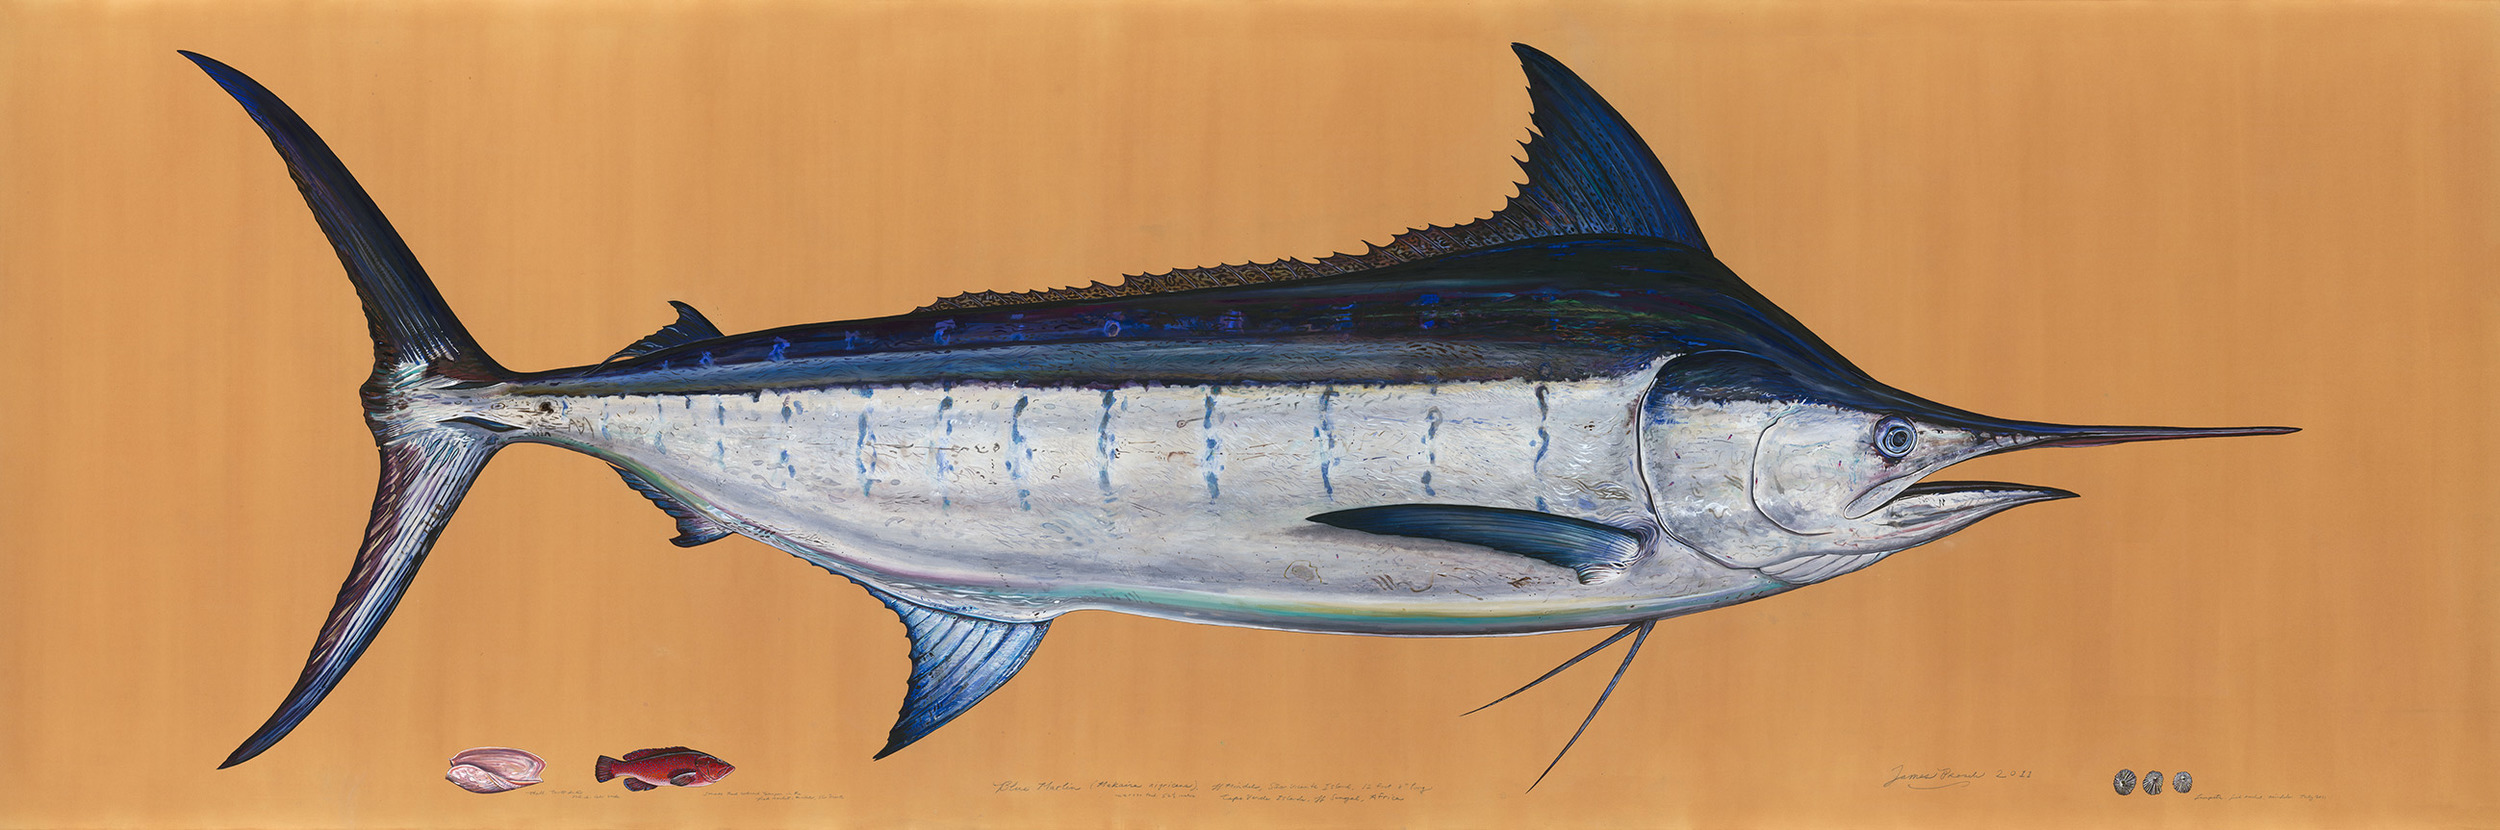 Painting of Blue Marlin by James Prosek - by permission of the Artist